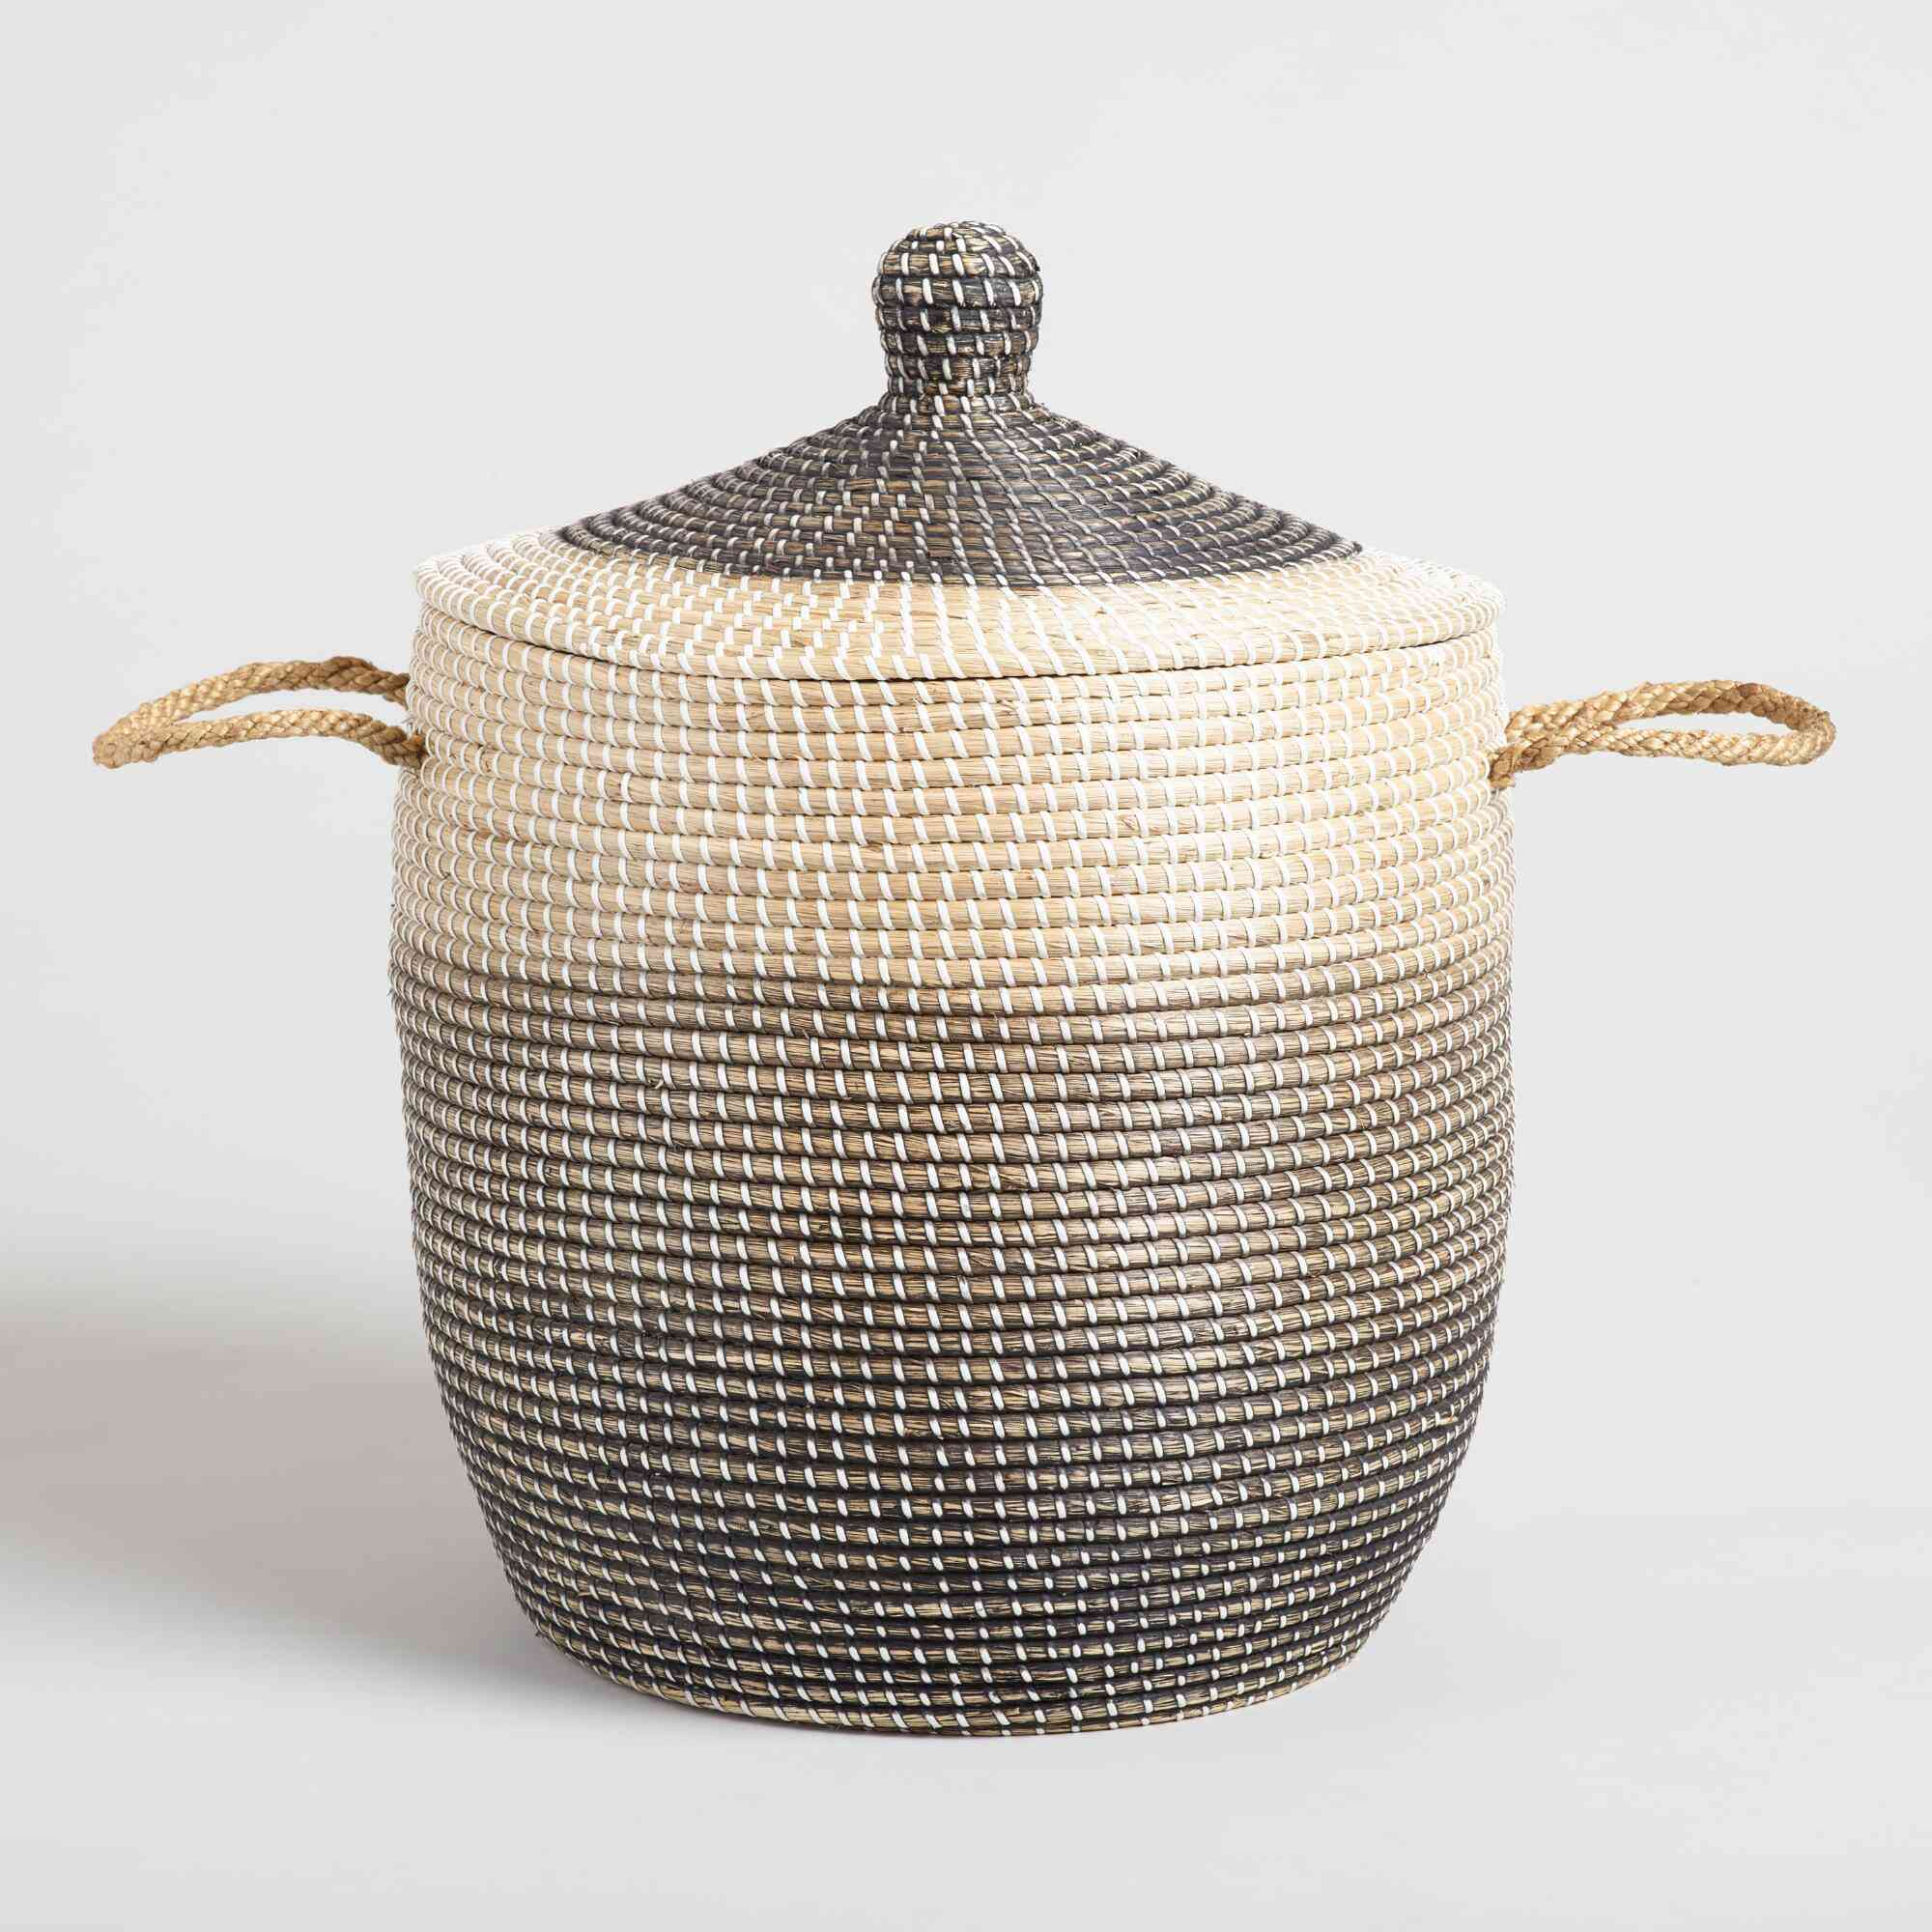 Ombre Seagrass Amelia Tote Basket With Lid